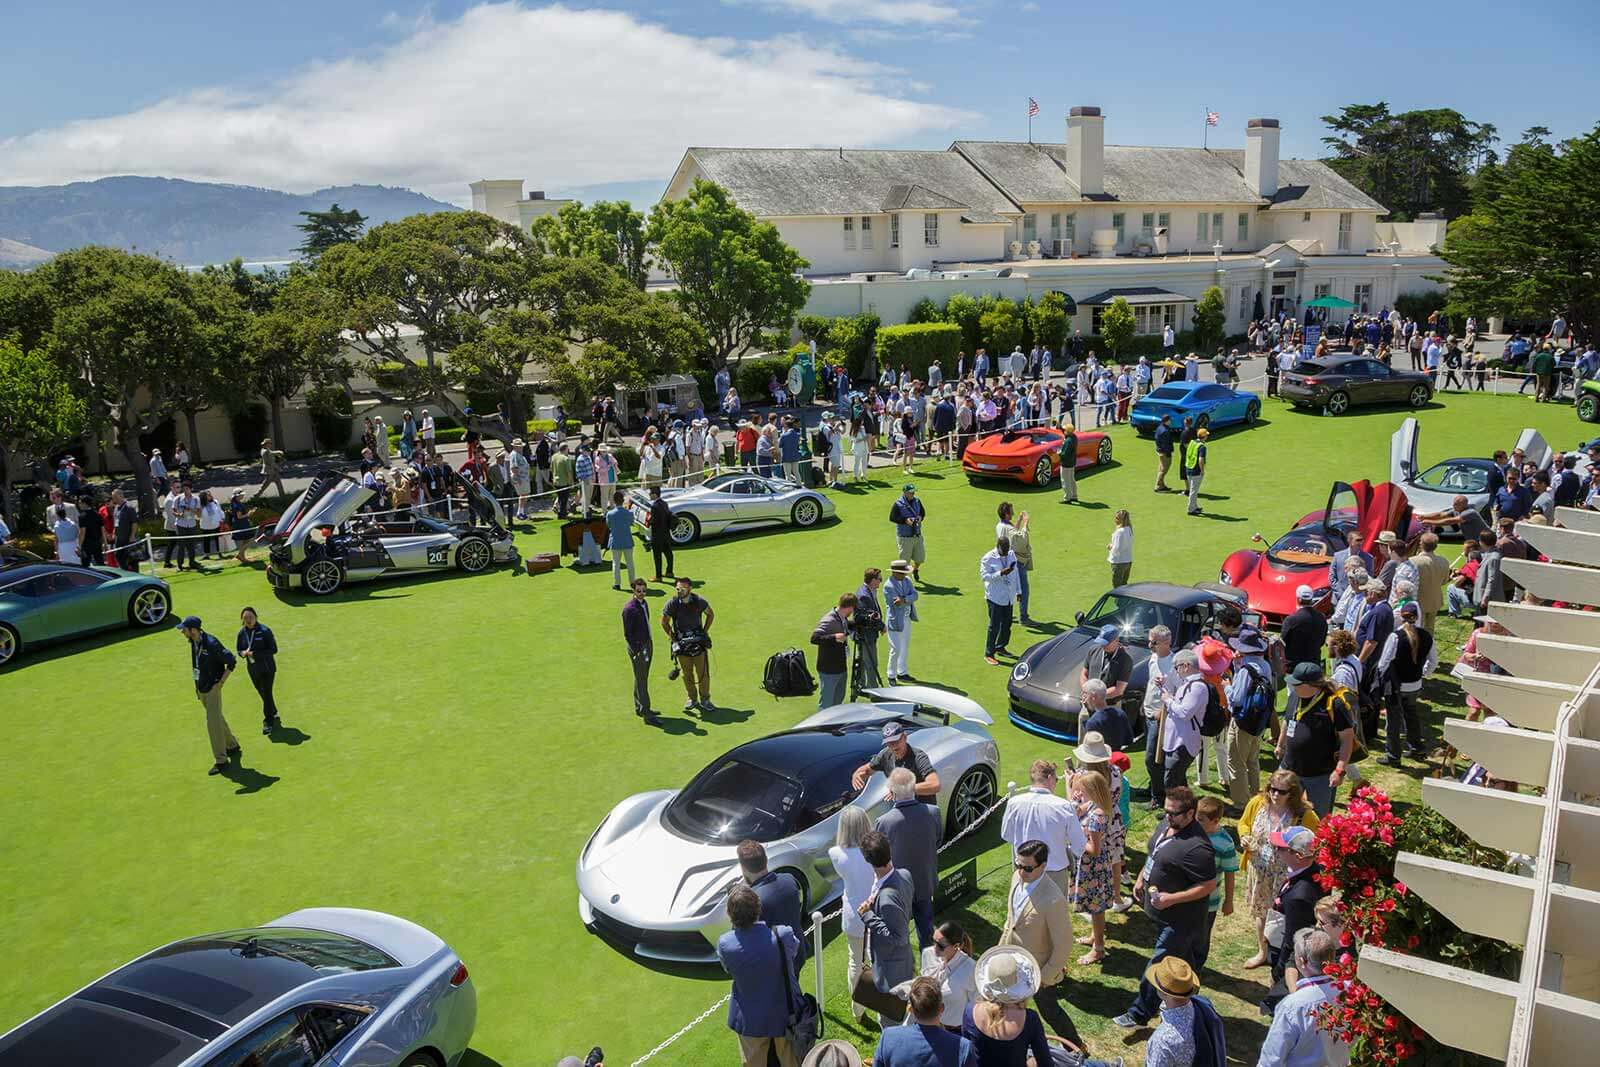 Concept Lawn at the Pebble Beach Concours d'Elegance